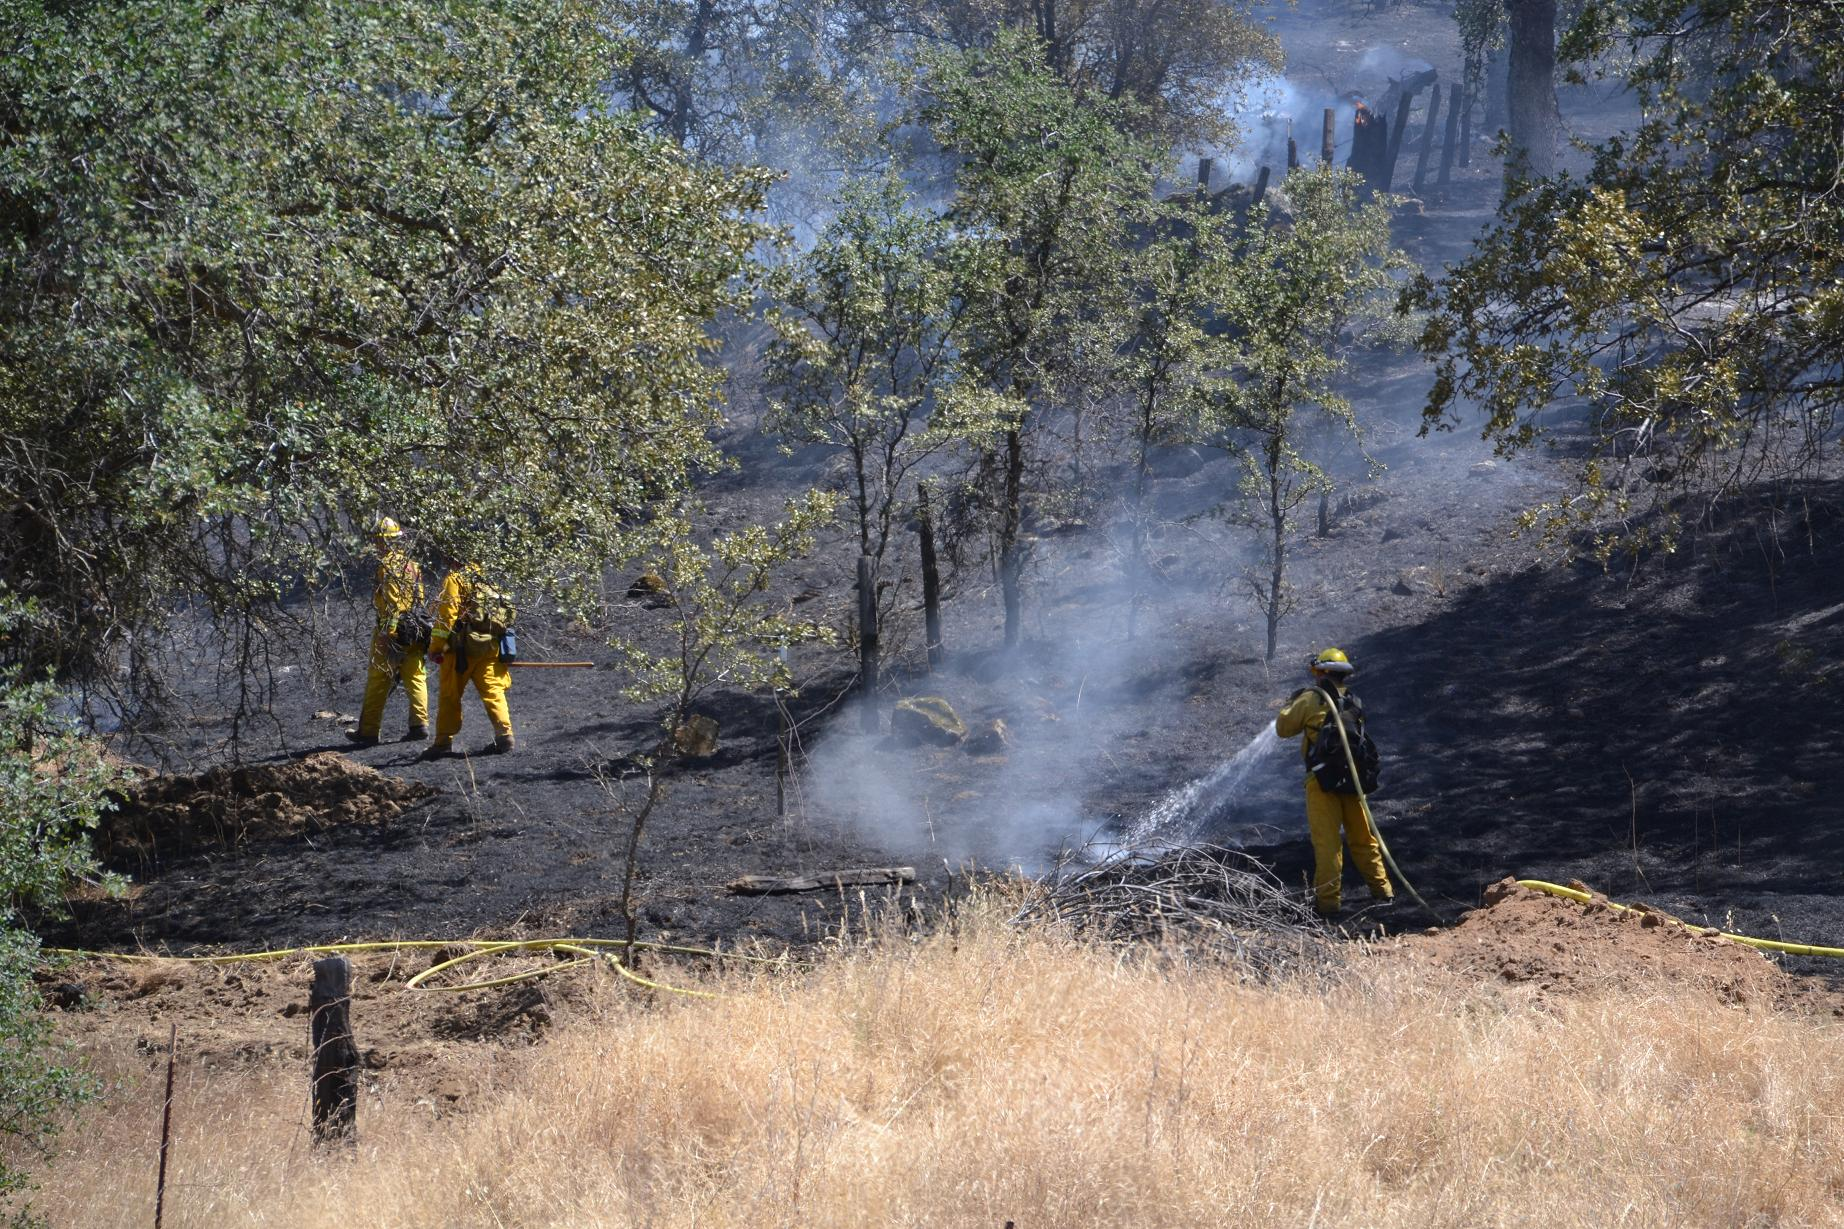 Crews hitting the hot spots on the Lakes Fire - photo by Gina Clugston